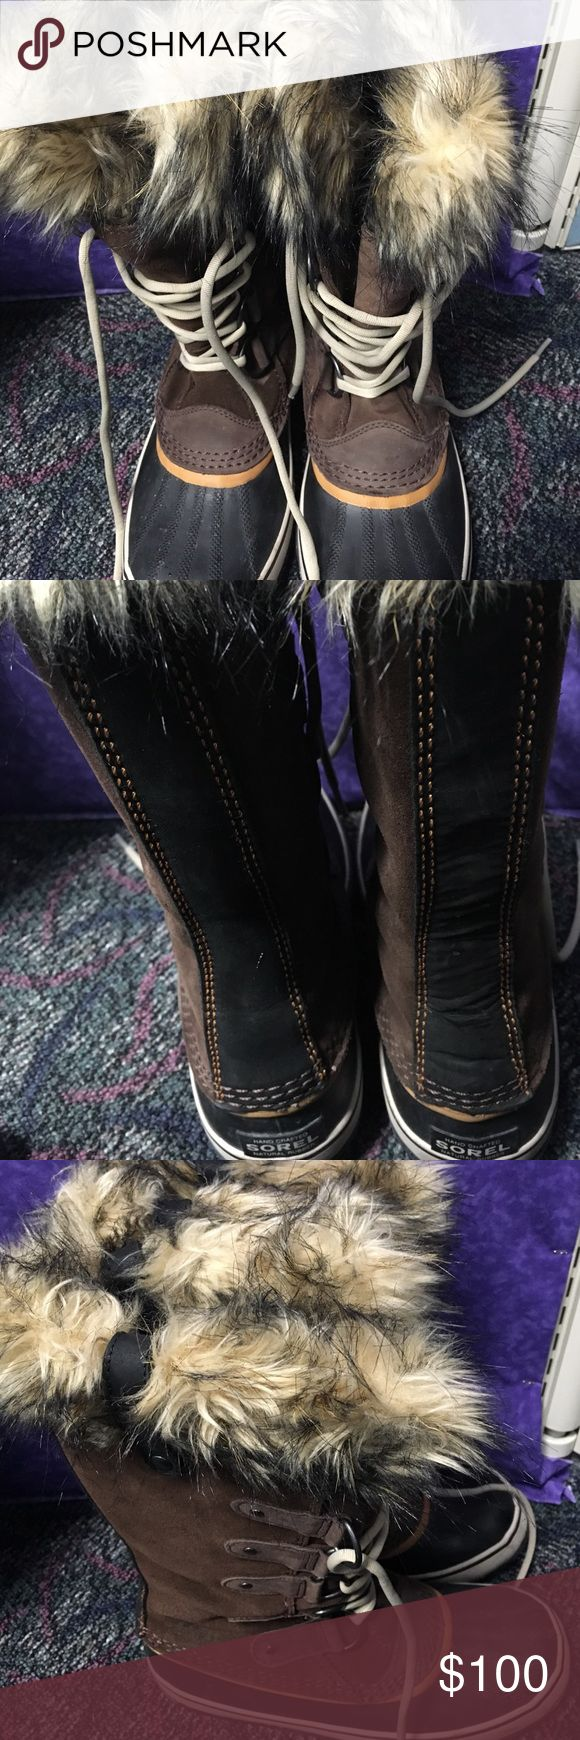 Sorel Joan of Arc boots Sorel boots, brown with black toes. In great condition, only worn 3 times. Sorel Shoes Winter & Rain Boots